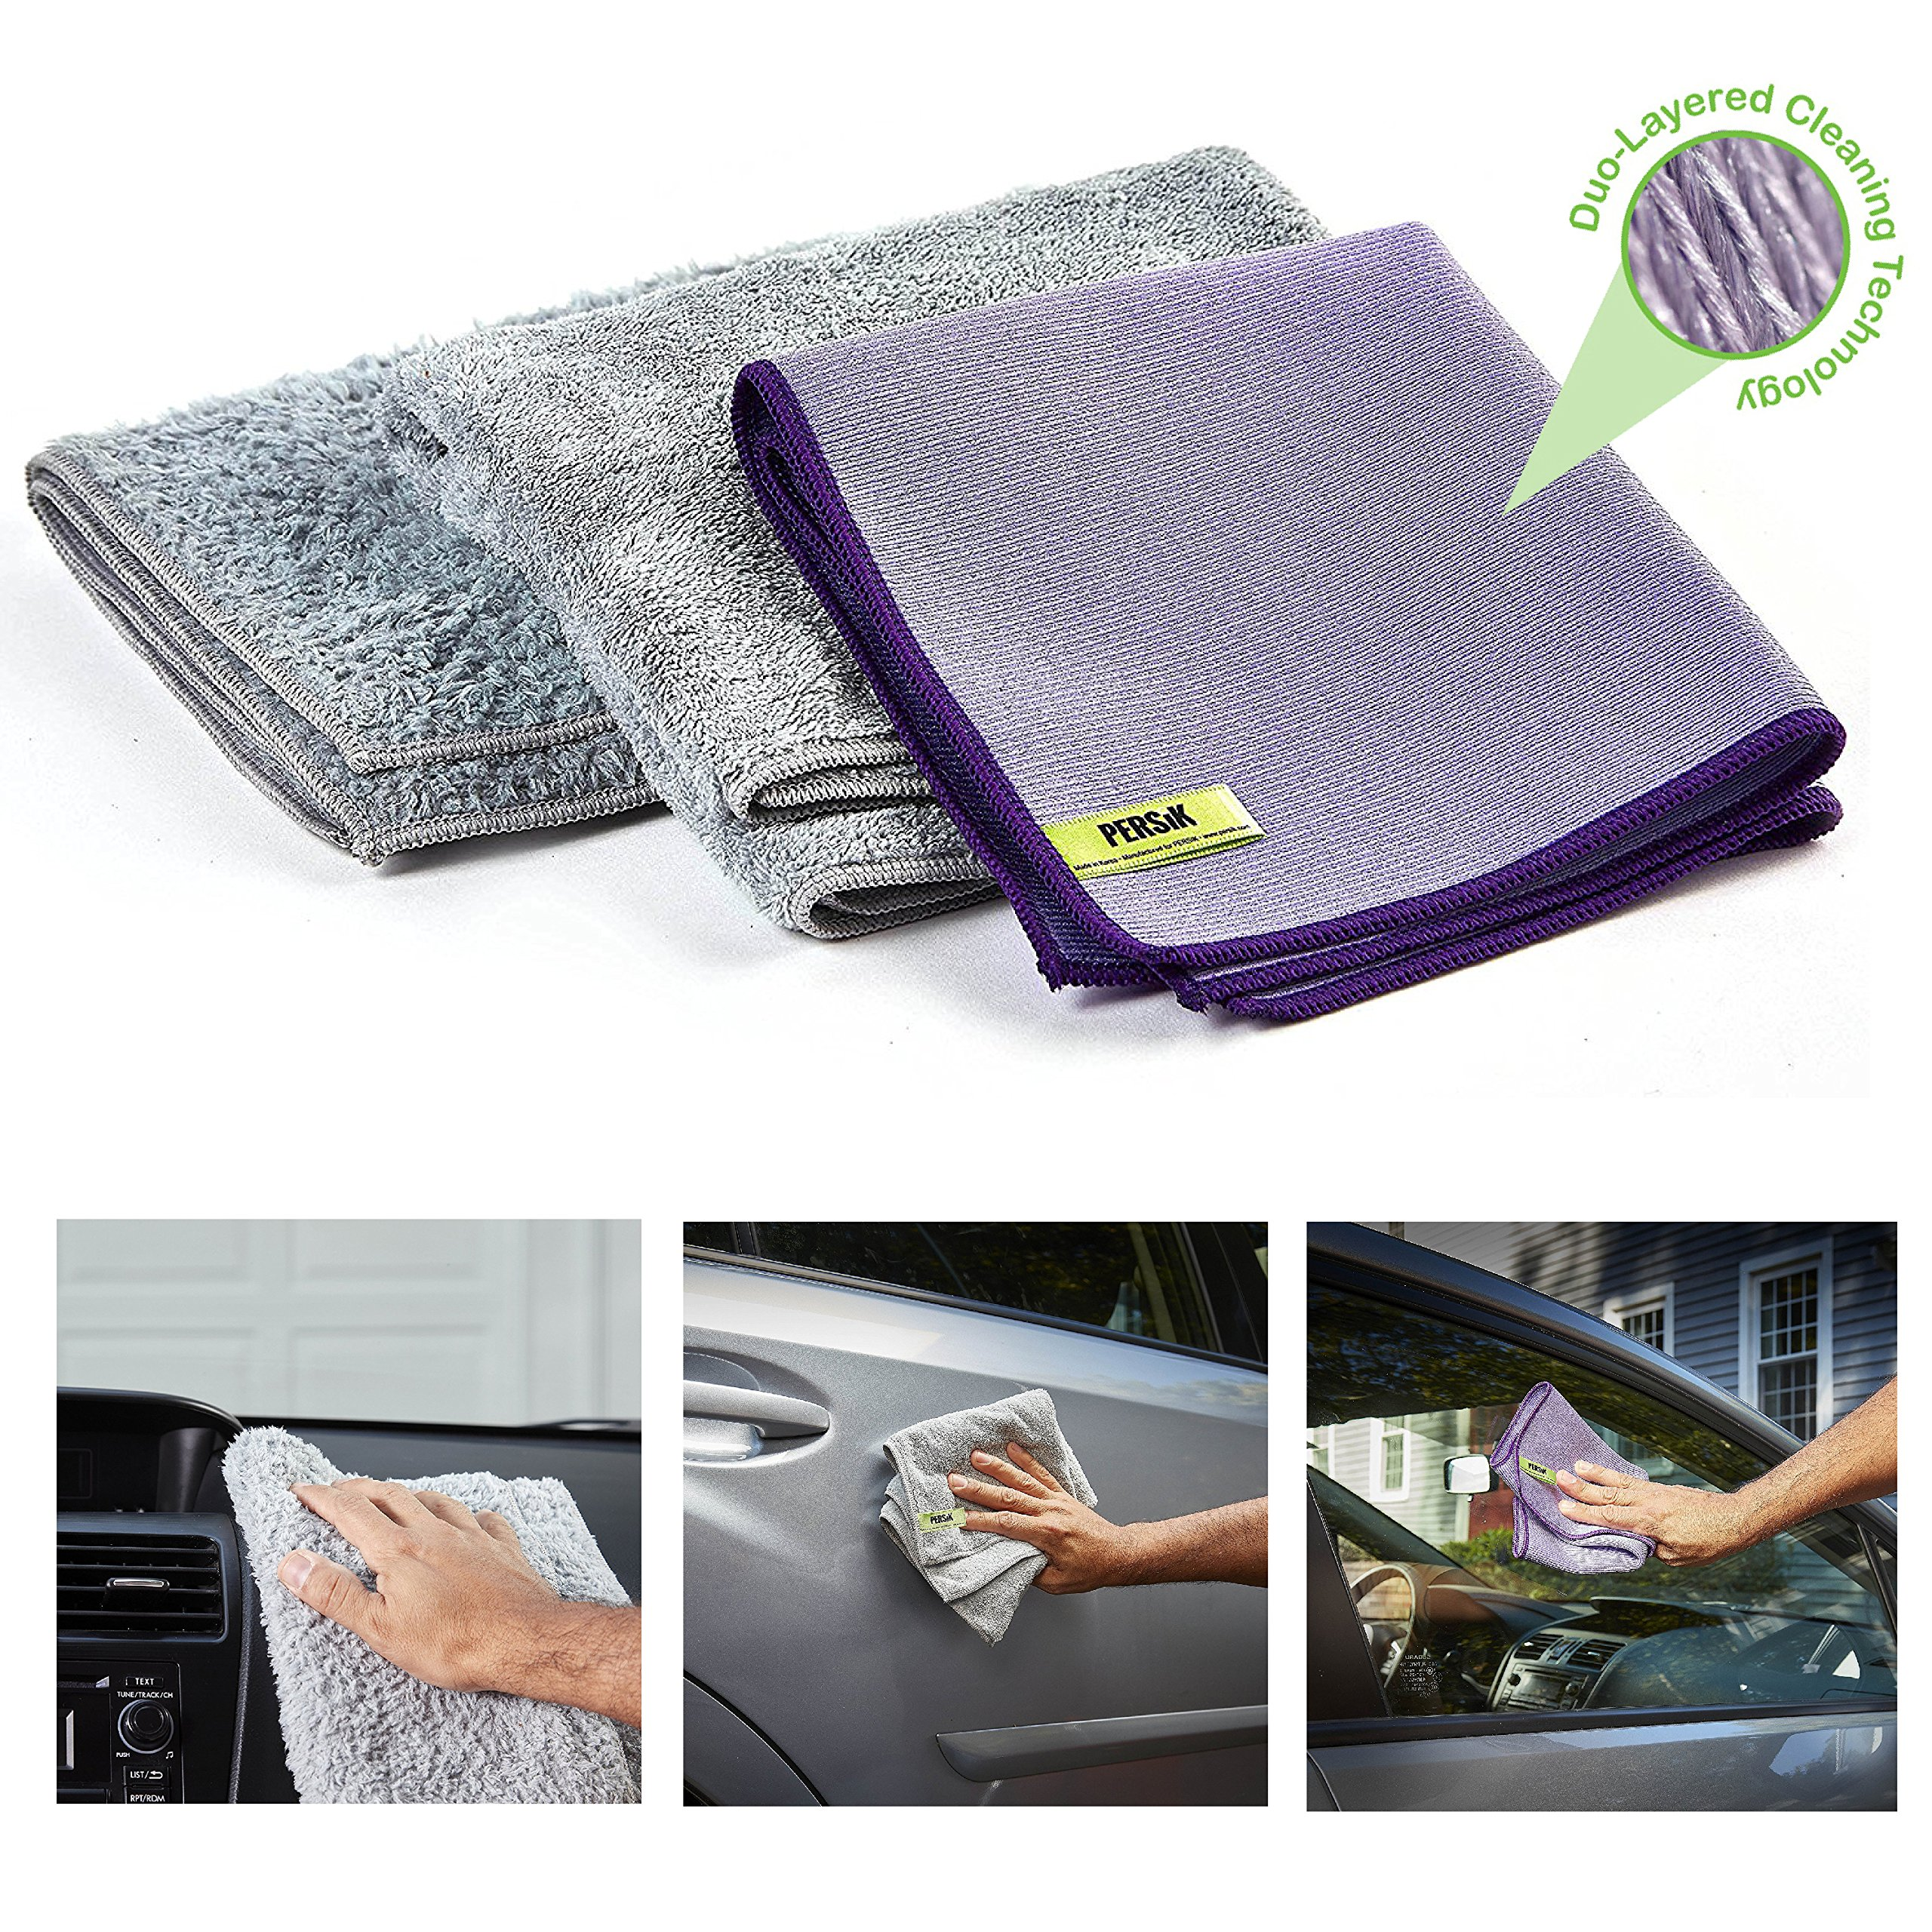 Pure-Sky Microfiber Towels for Cars - 4-Piece Car Cleaning Kit - JUST ADD Water No Detergents Needed - Includes, Interior Microfiber Cleaning Cloth, Body Non-Scratch Towel, Windows Streak Free Towel